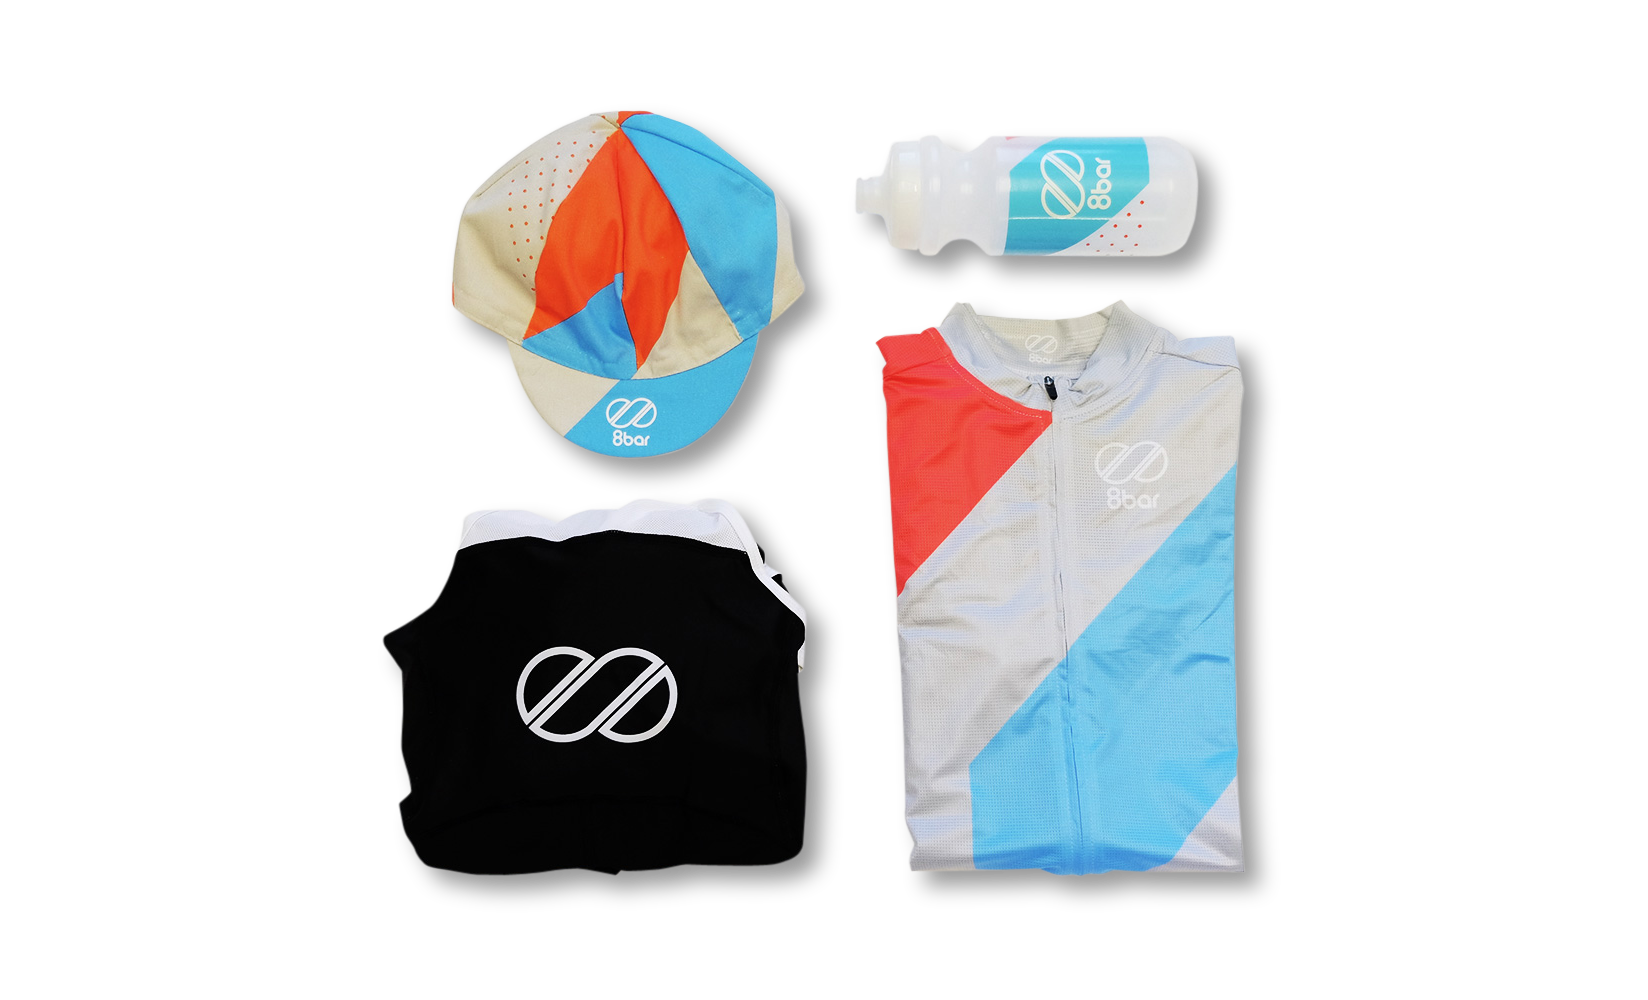 Clothes on a white background. 8bar club edition jersey, bib, cycling cap and cycling bottle.